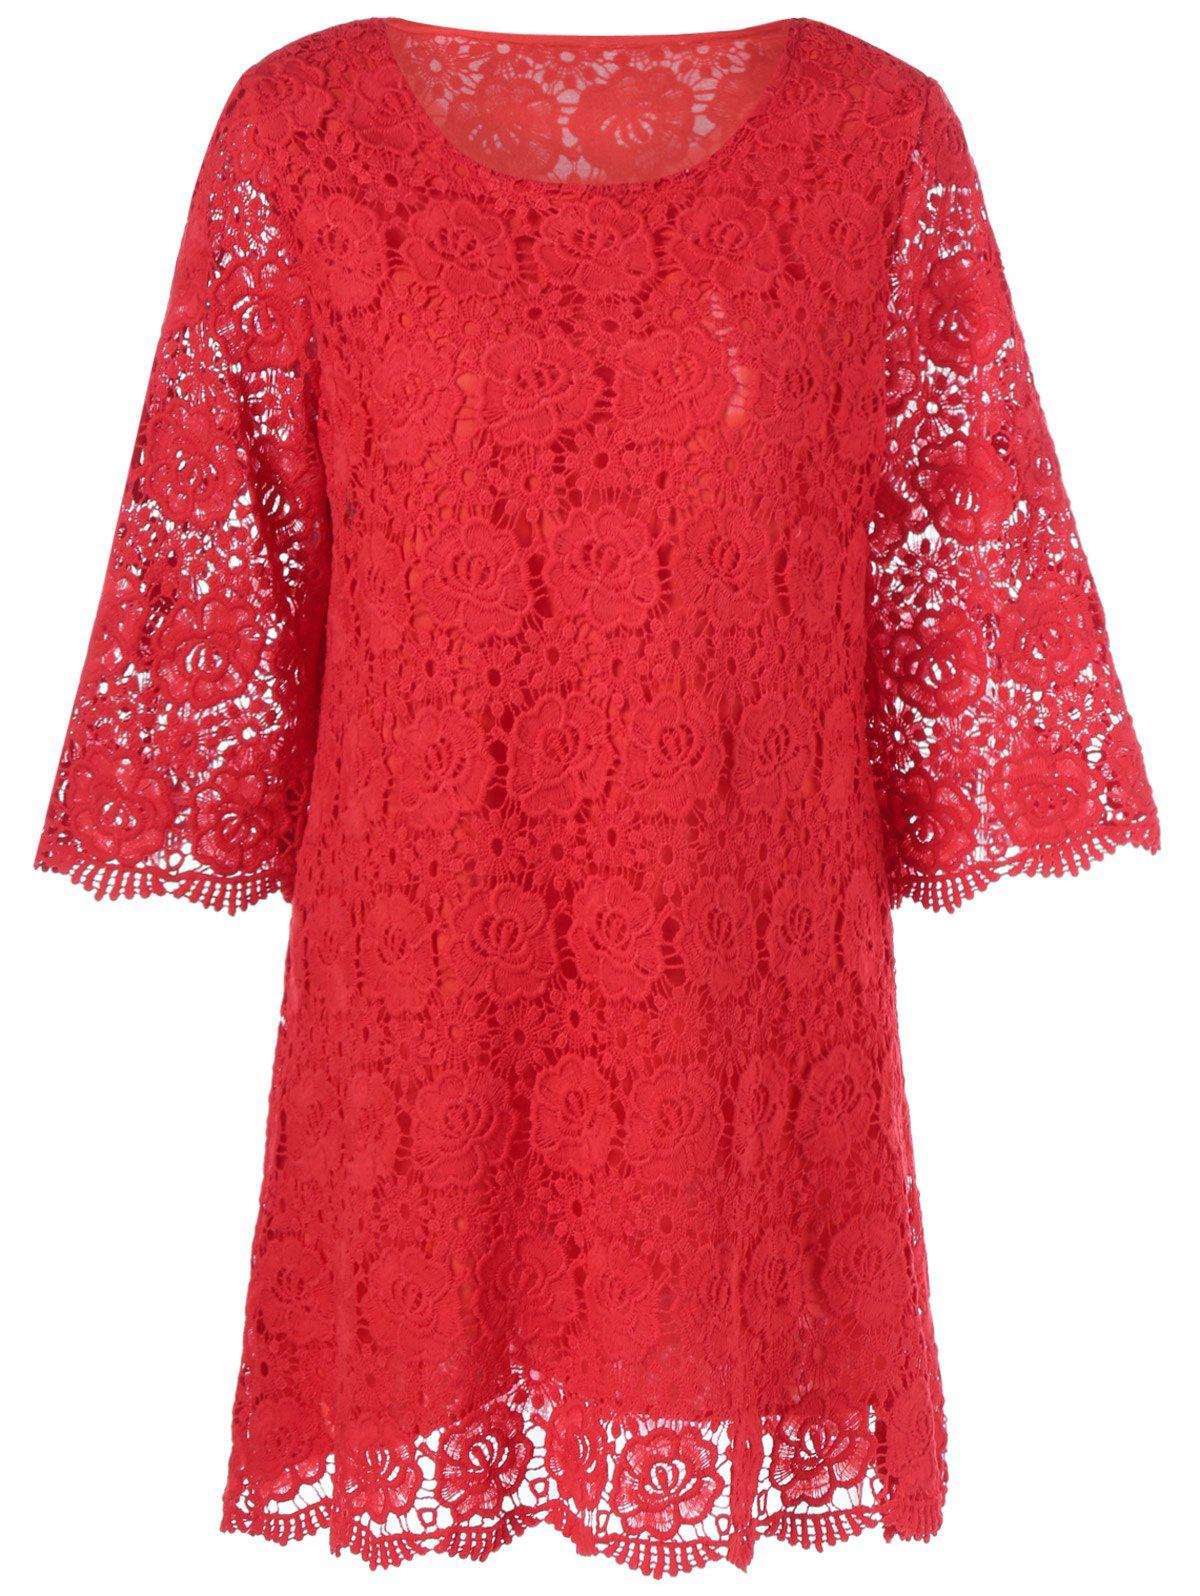 Lace Floral Overlay 3/4 Sleeve DressWomen<br><br><br>Size: L<br>Color: RED